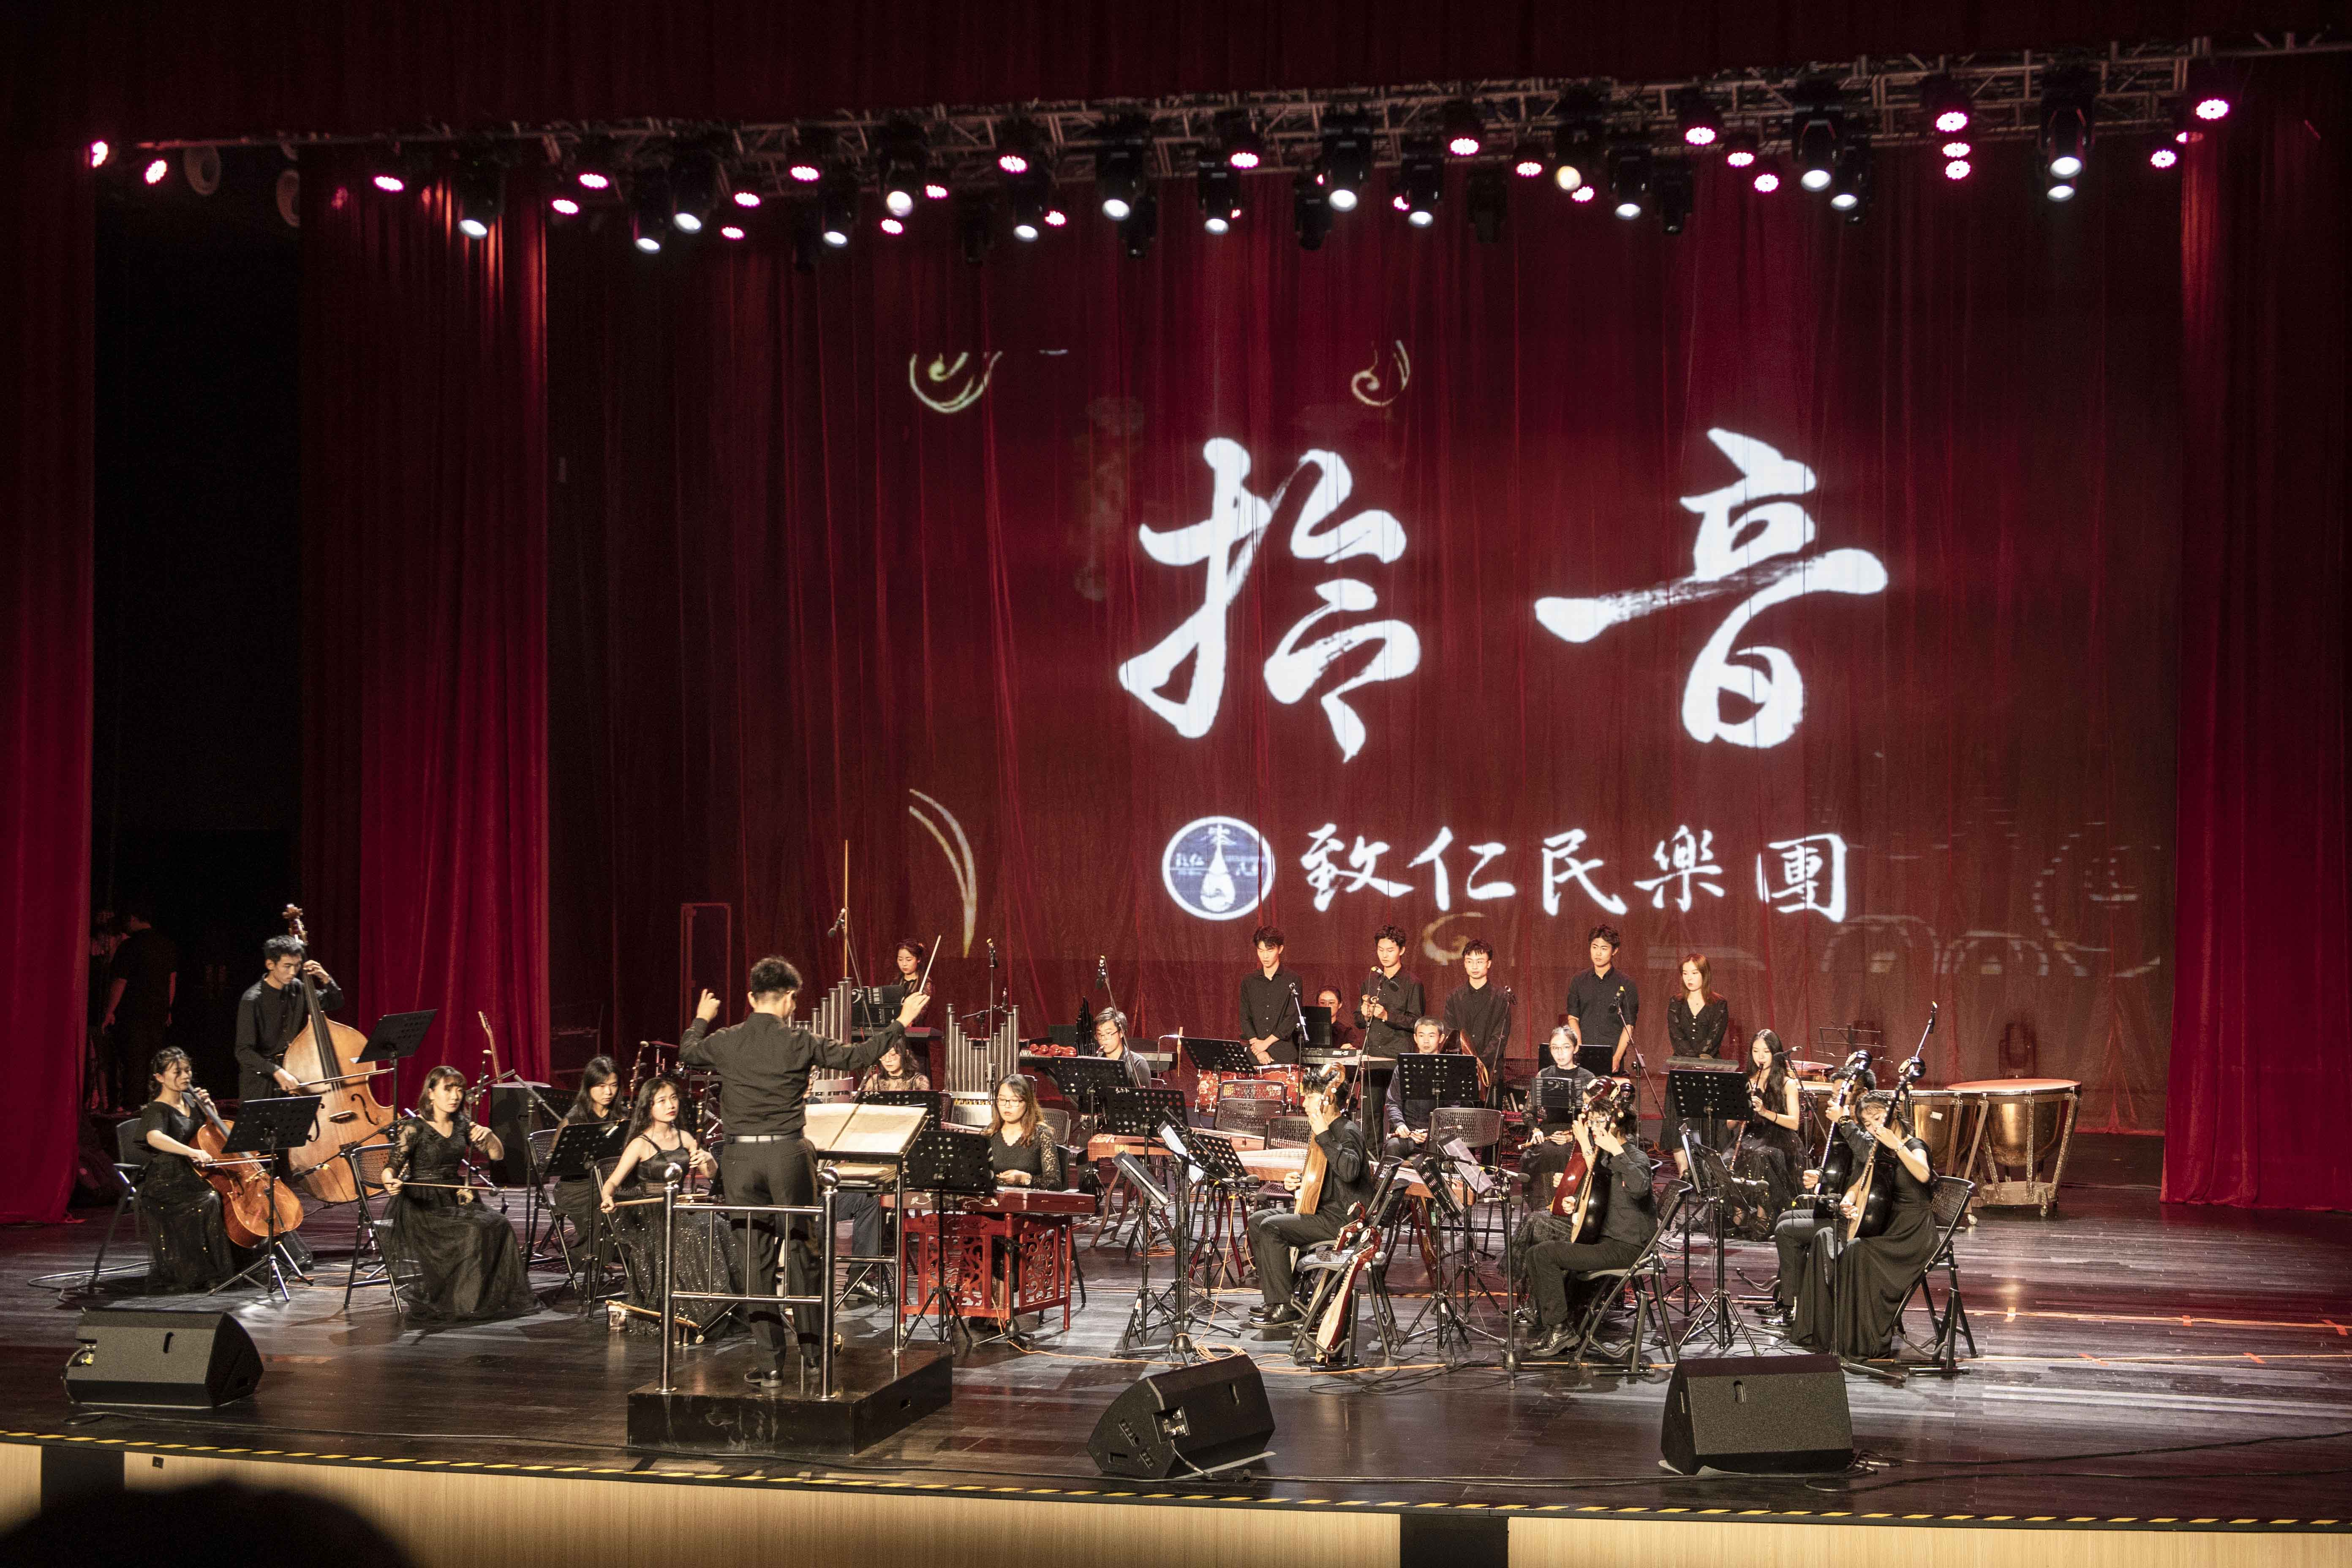 Zhiren Orchestra performs magnificently in special concert